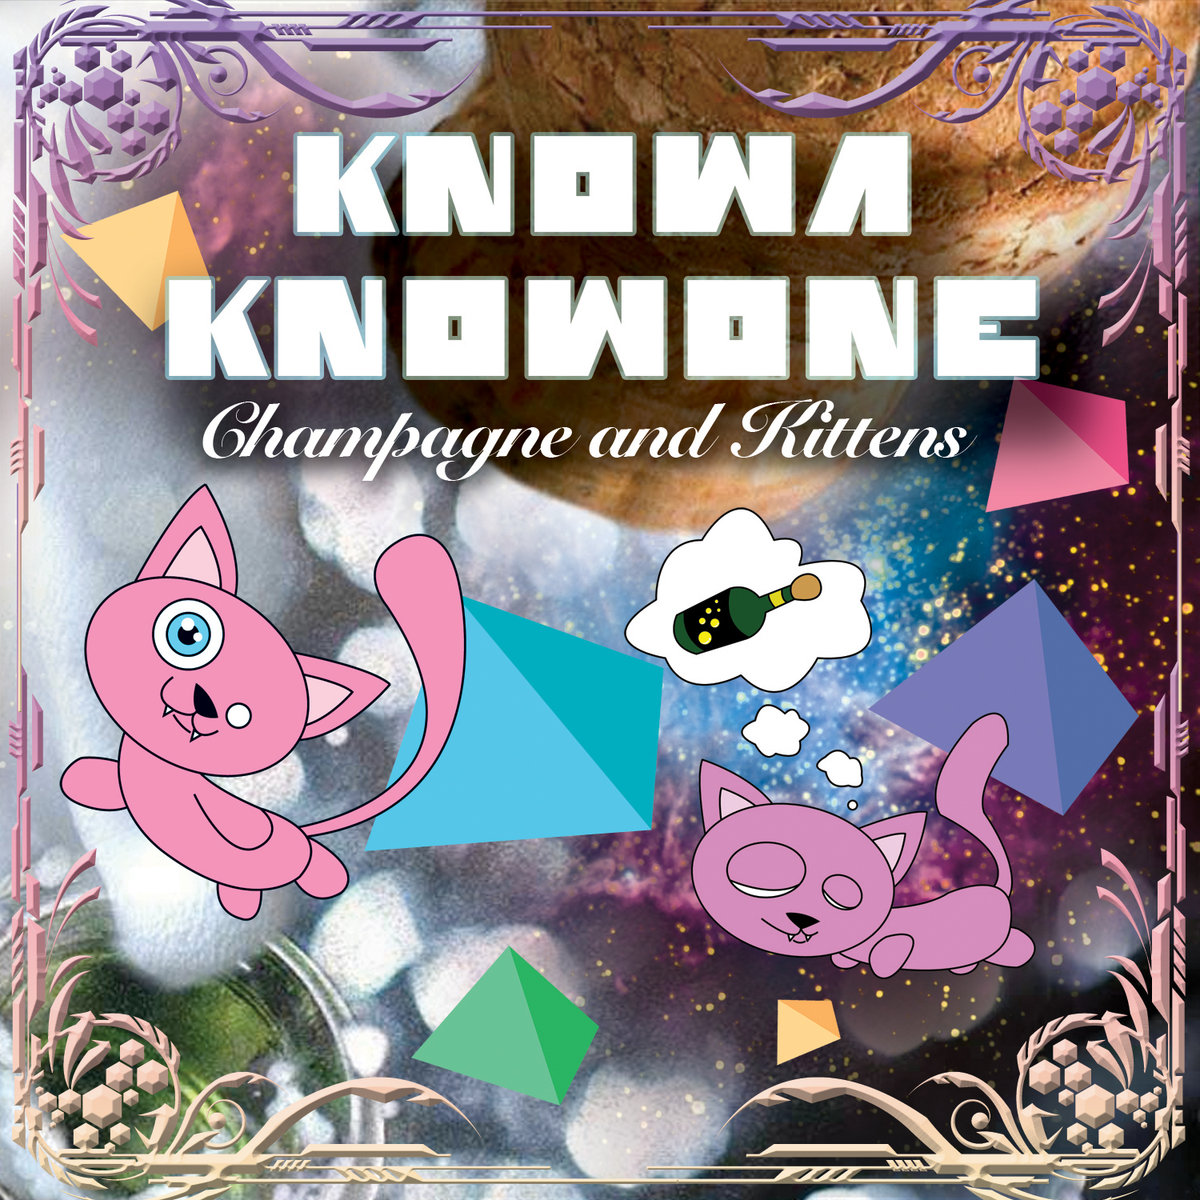 Knowa Knowone - East Oakland Bounce @ 'Champagne and Kittens' album (bass, electronic)